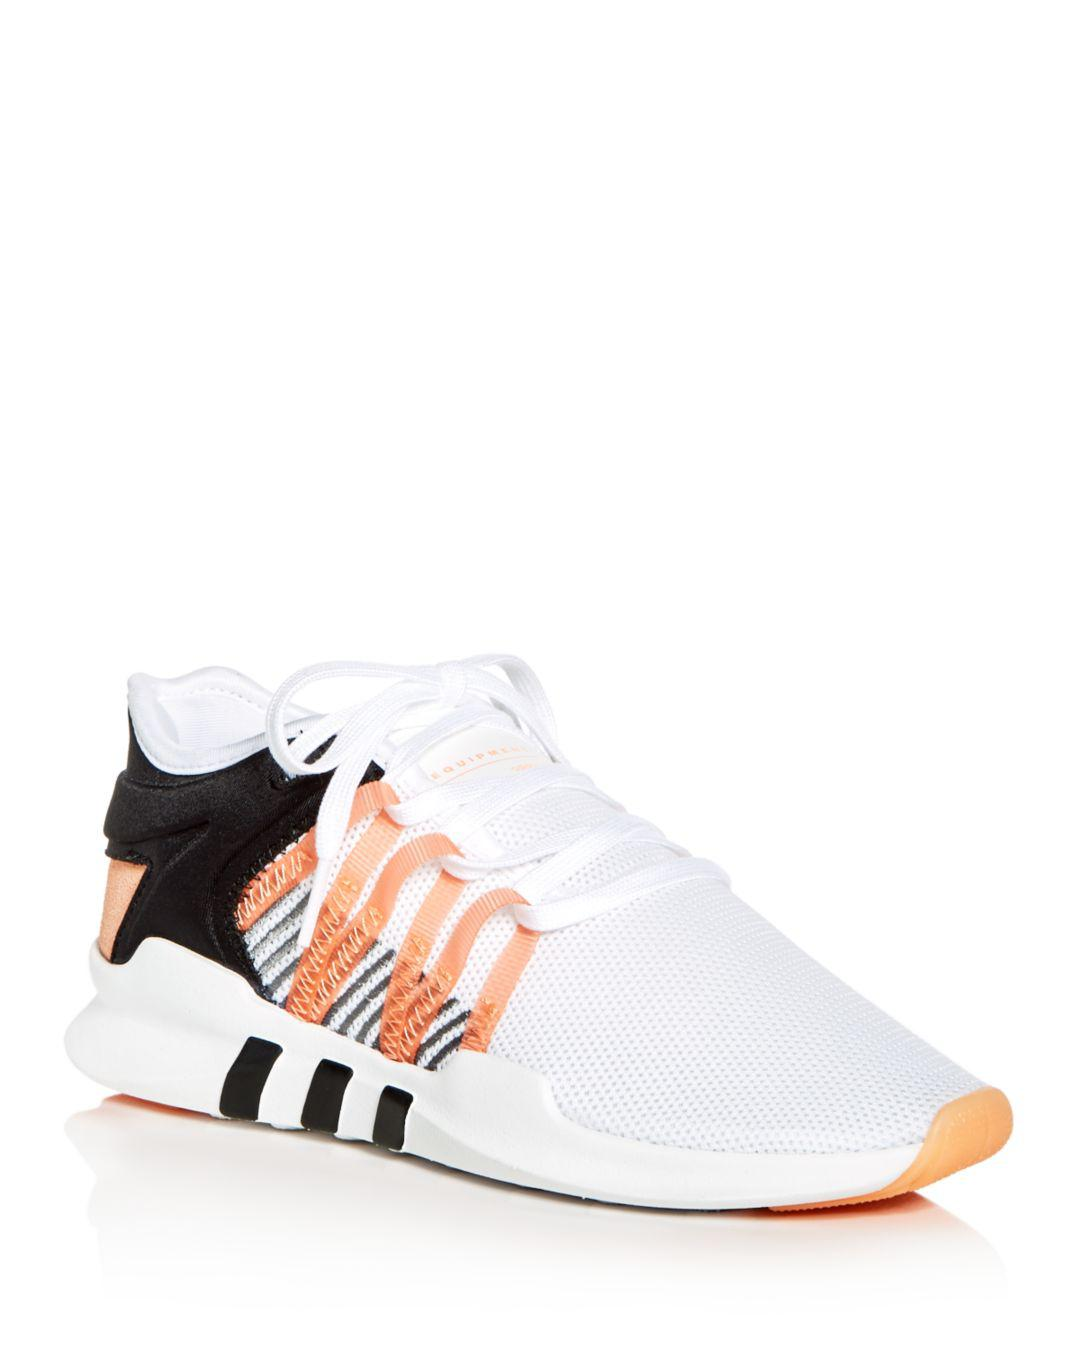 f72e4f7baba4 Lyst - adidas Women s Eqt Racing Advantage Lace Up Sneakers in White